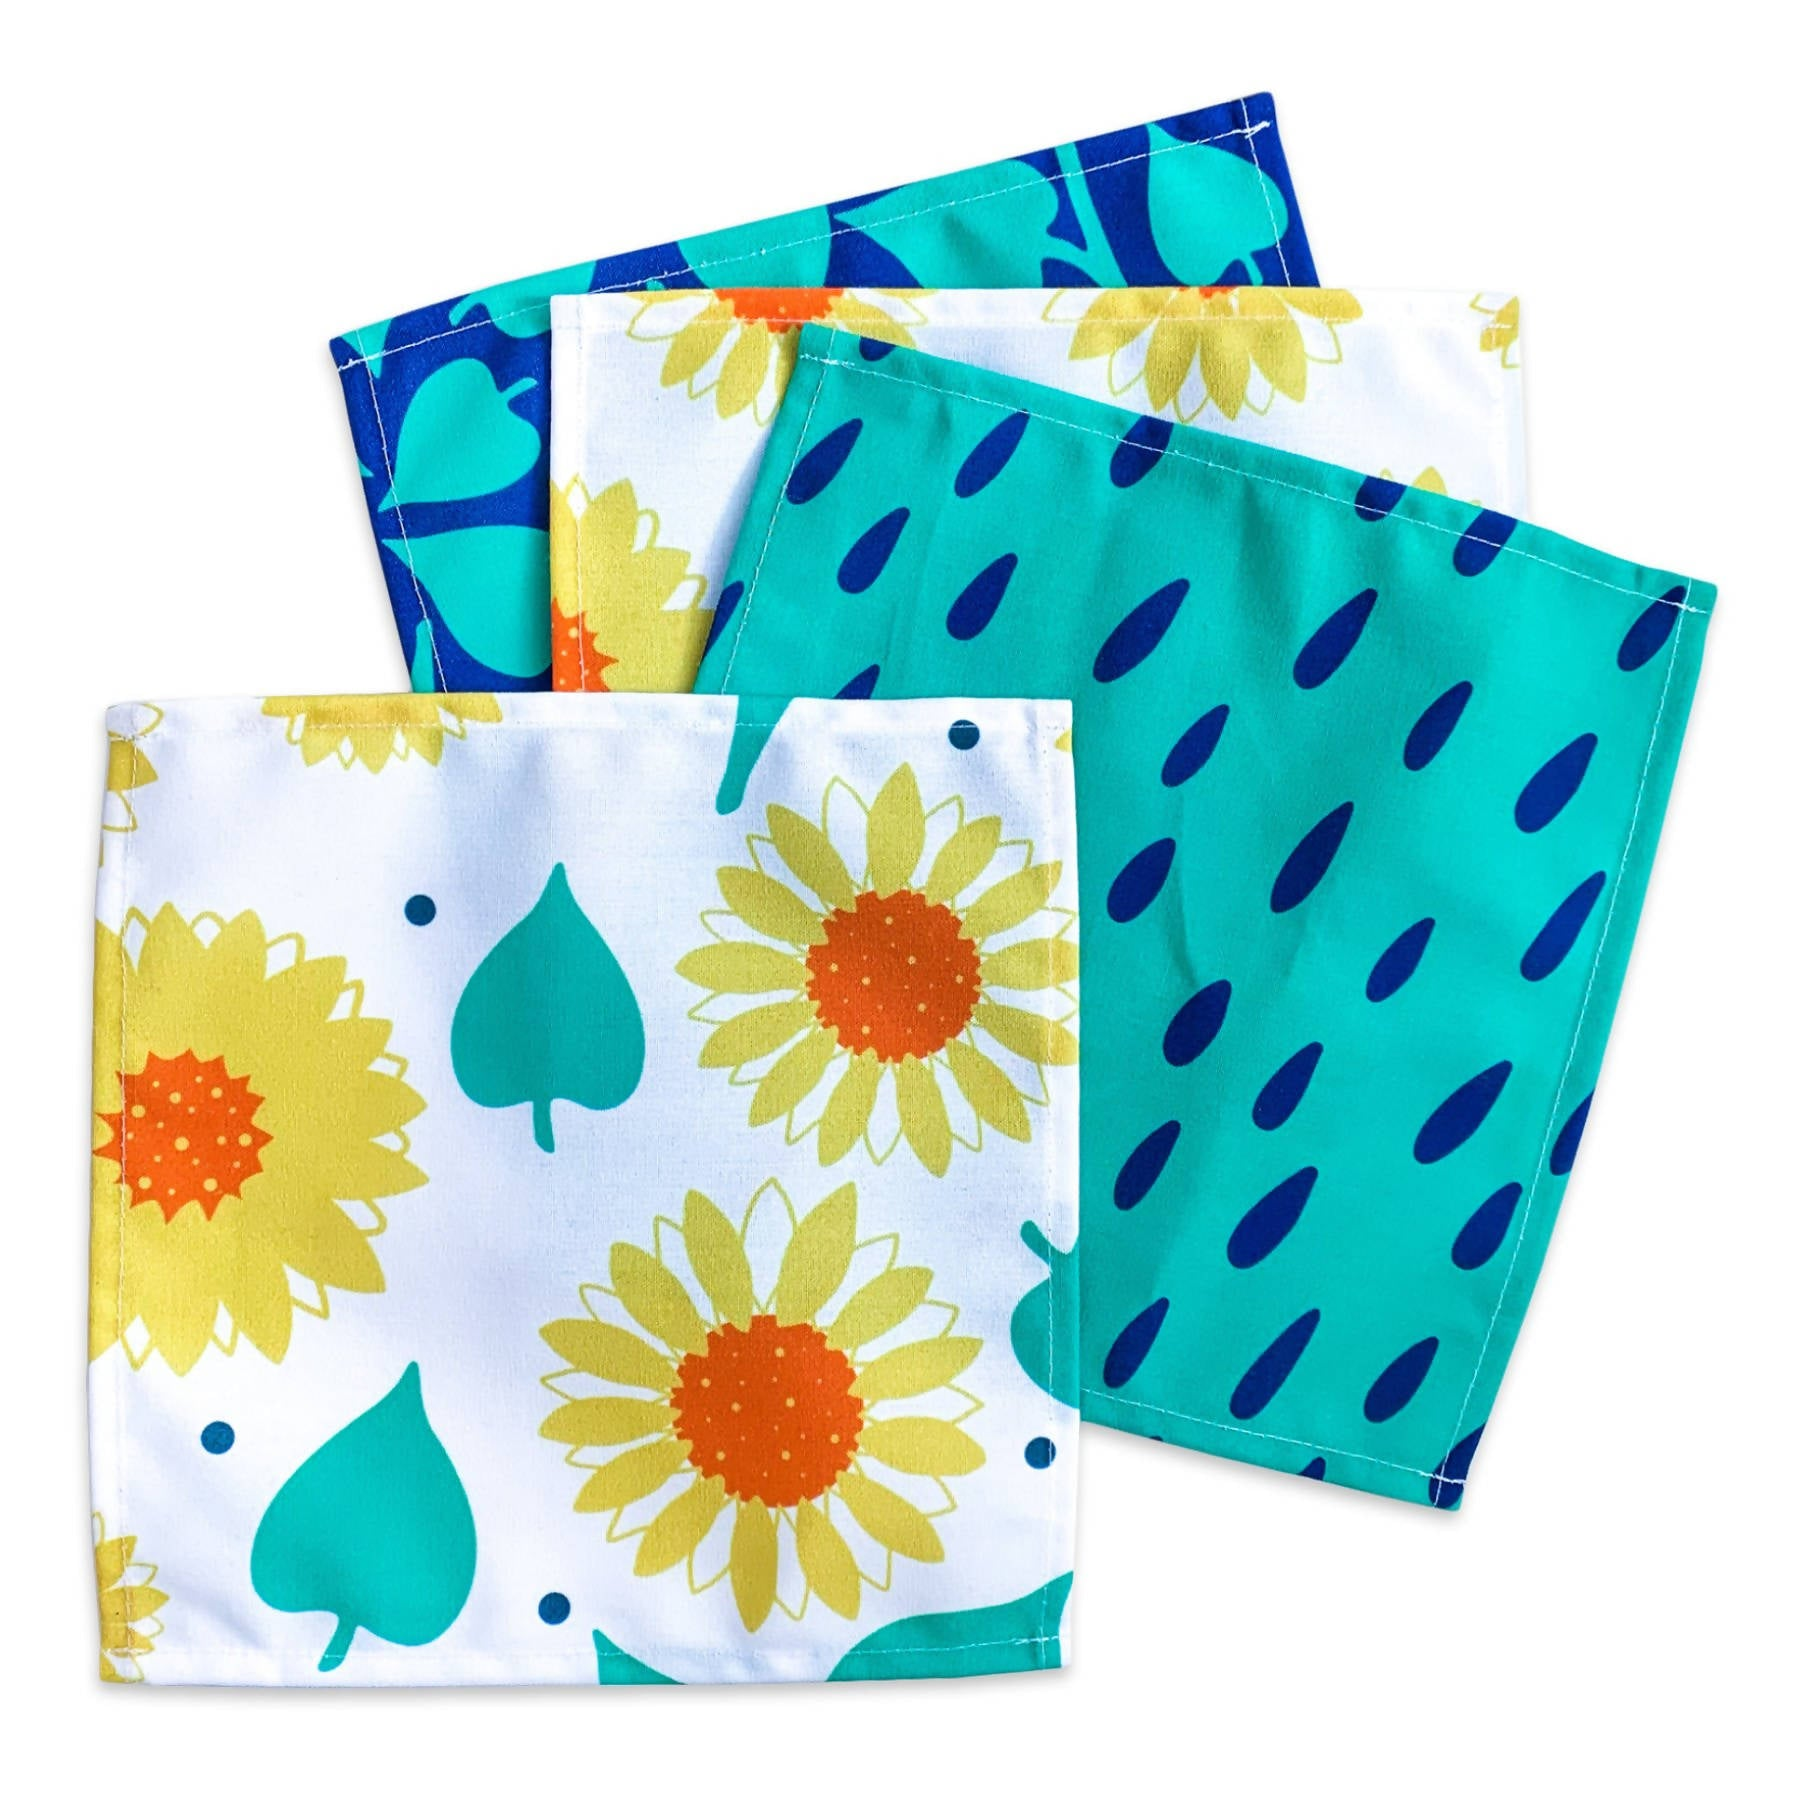 Cocktail Napkins - Sunflowers & Leaves Set of 4